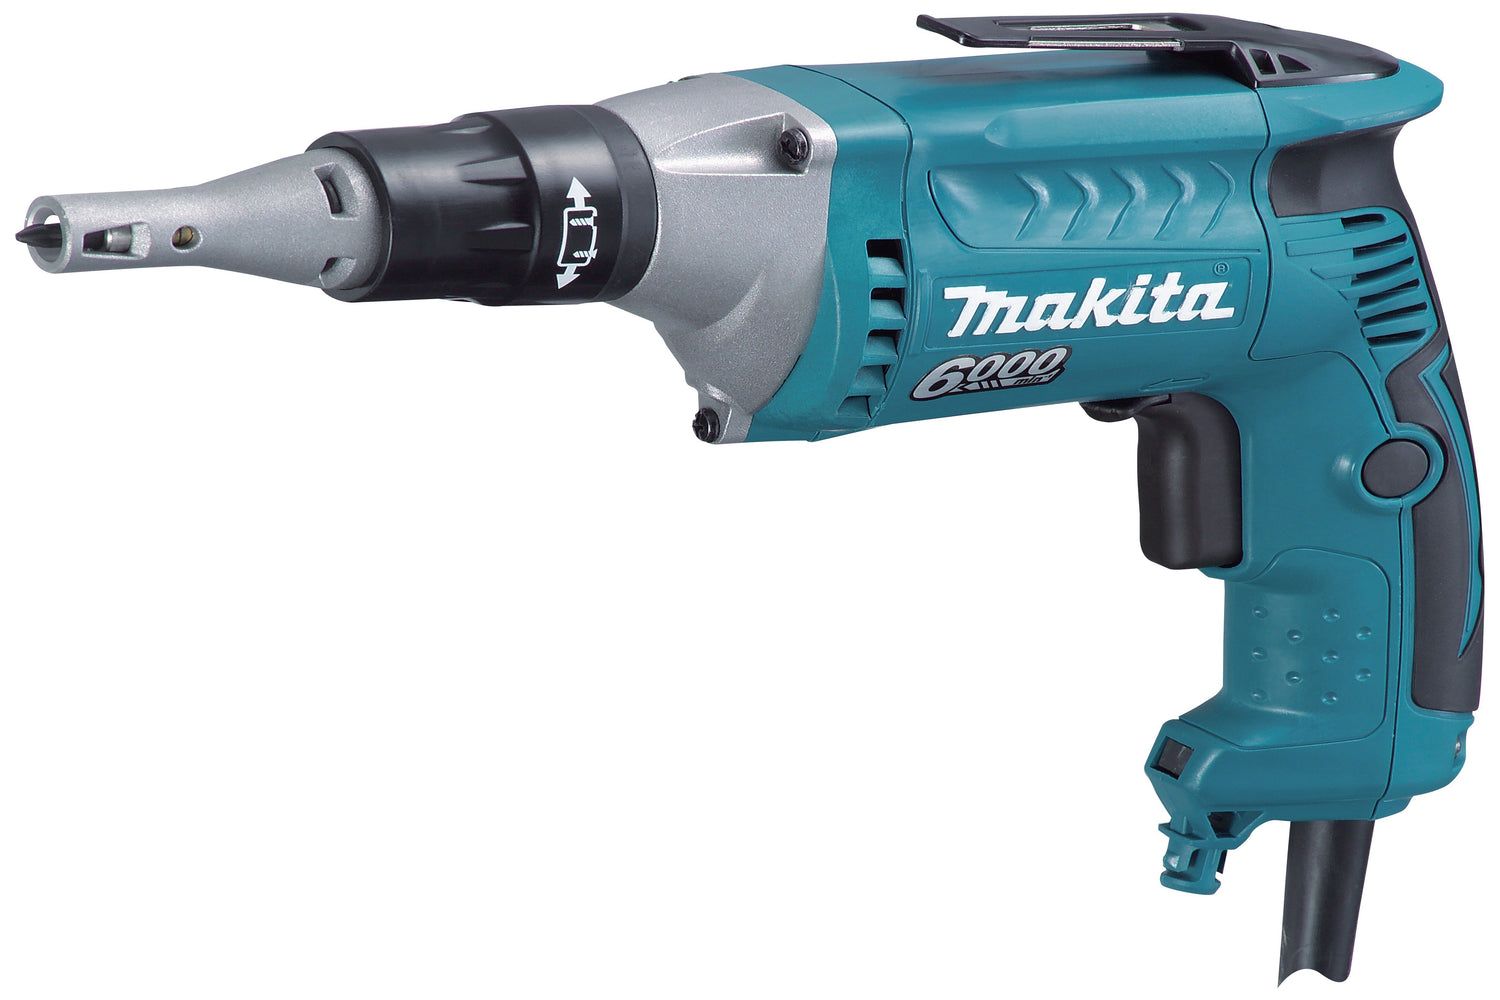 Makita Screwdriver For Steel Struts FS6300(570WATT)